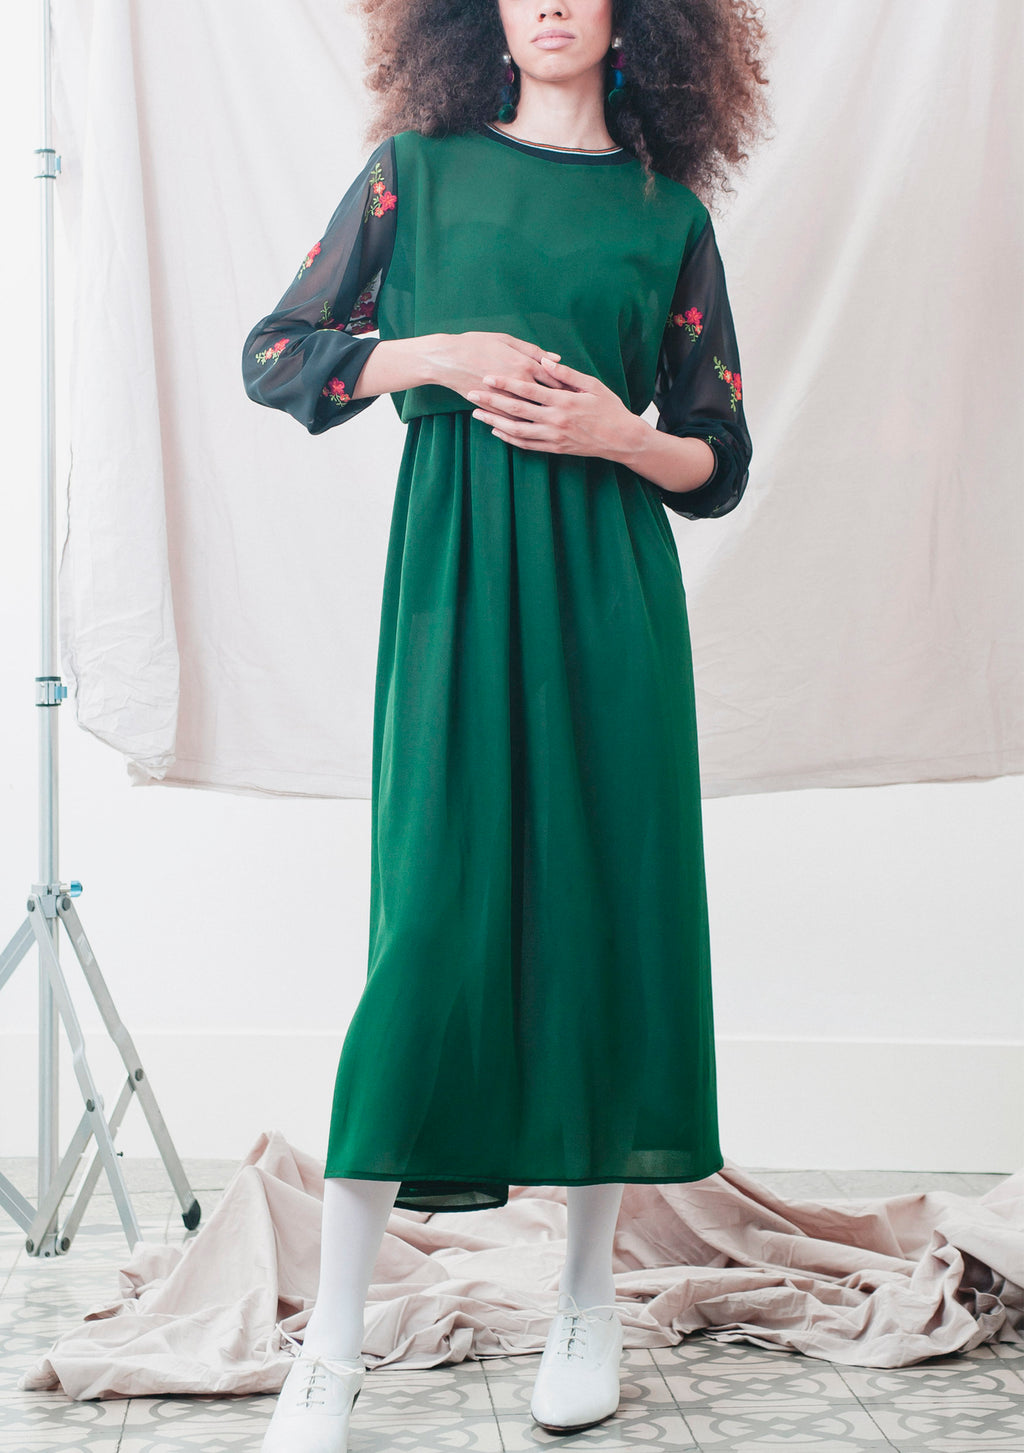 GREEN MEDLEY DRESS